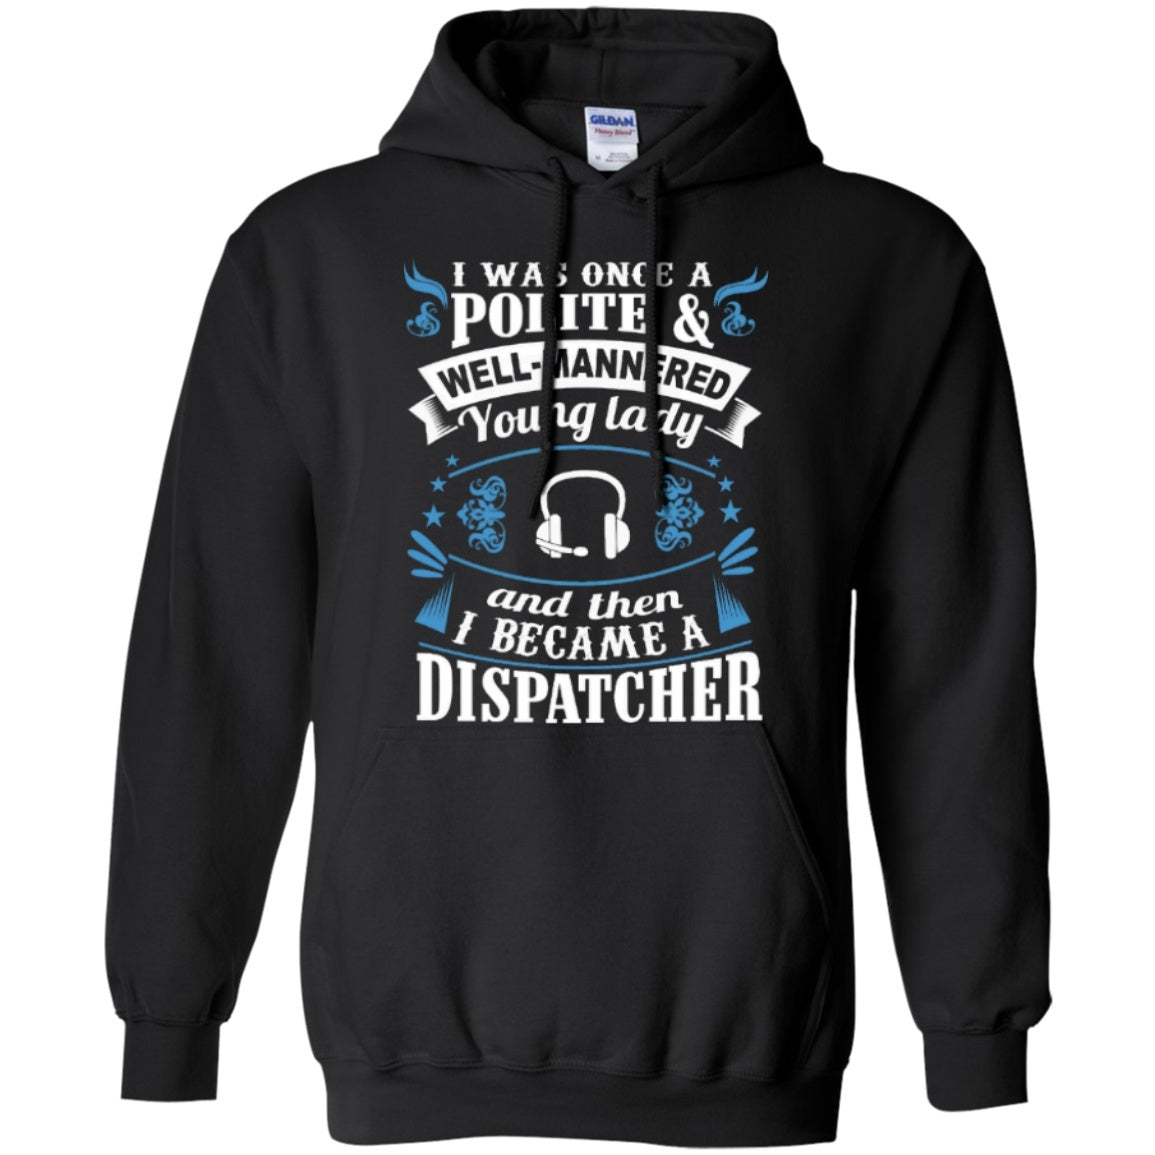 I was once a polite well manered young lady and then I Became a Dispatcher   Hoodie